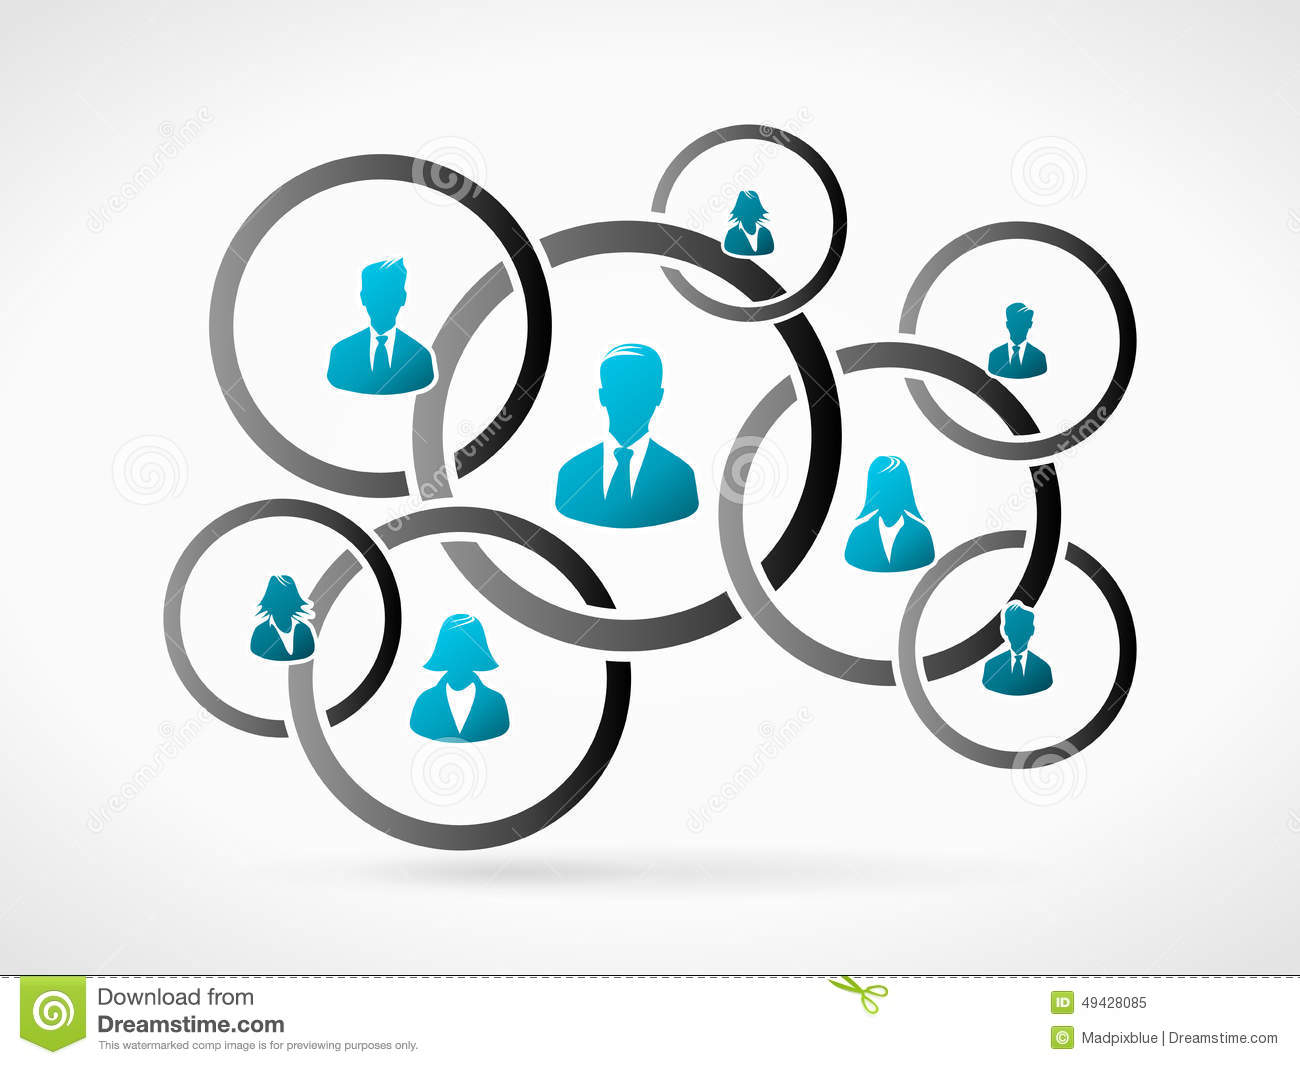 Business organization interaction. Human people icon silhouette.